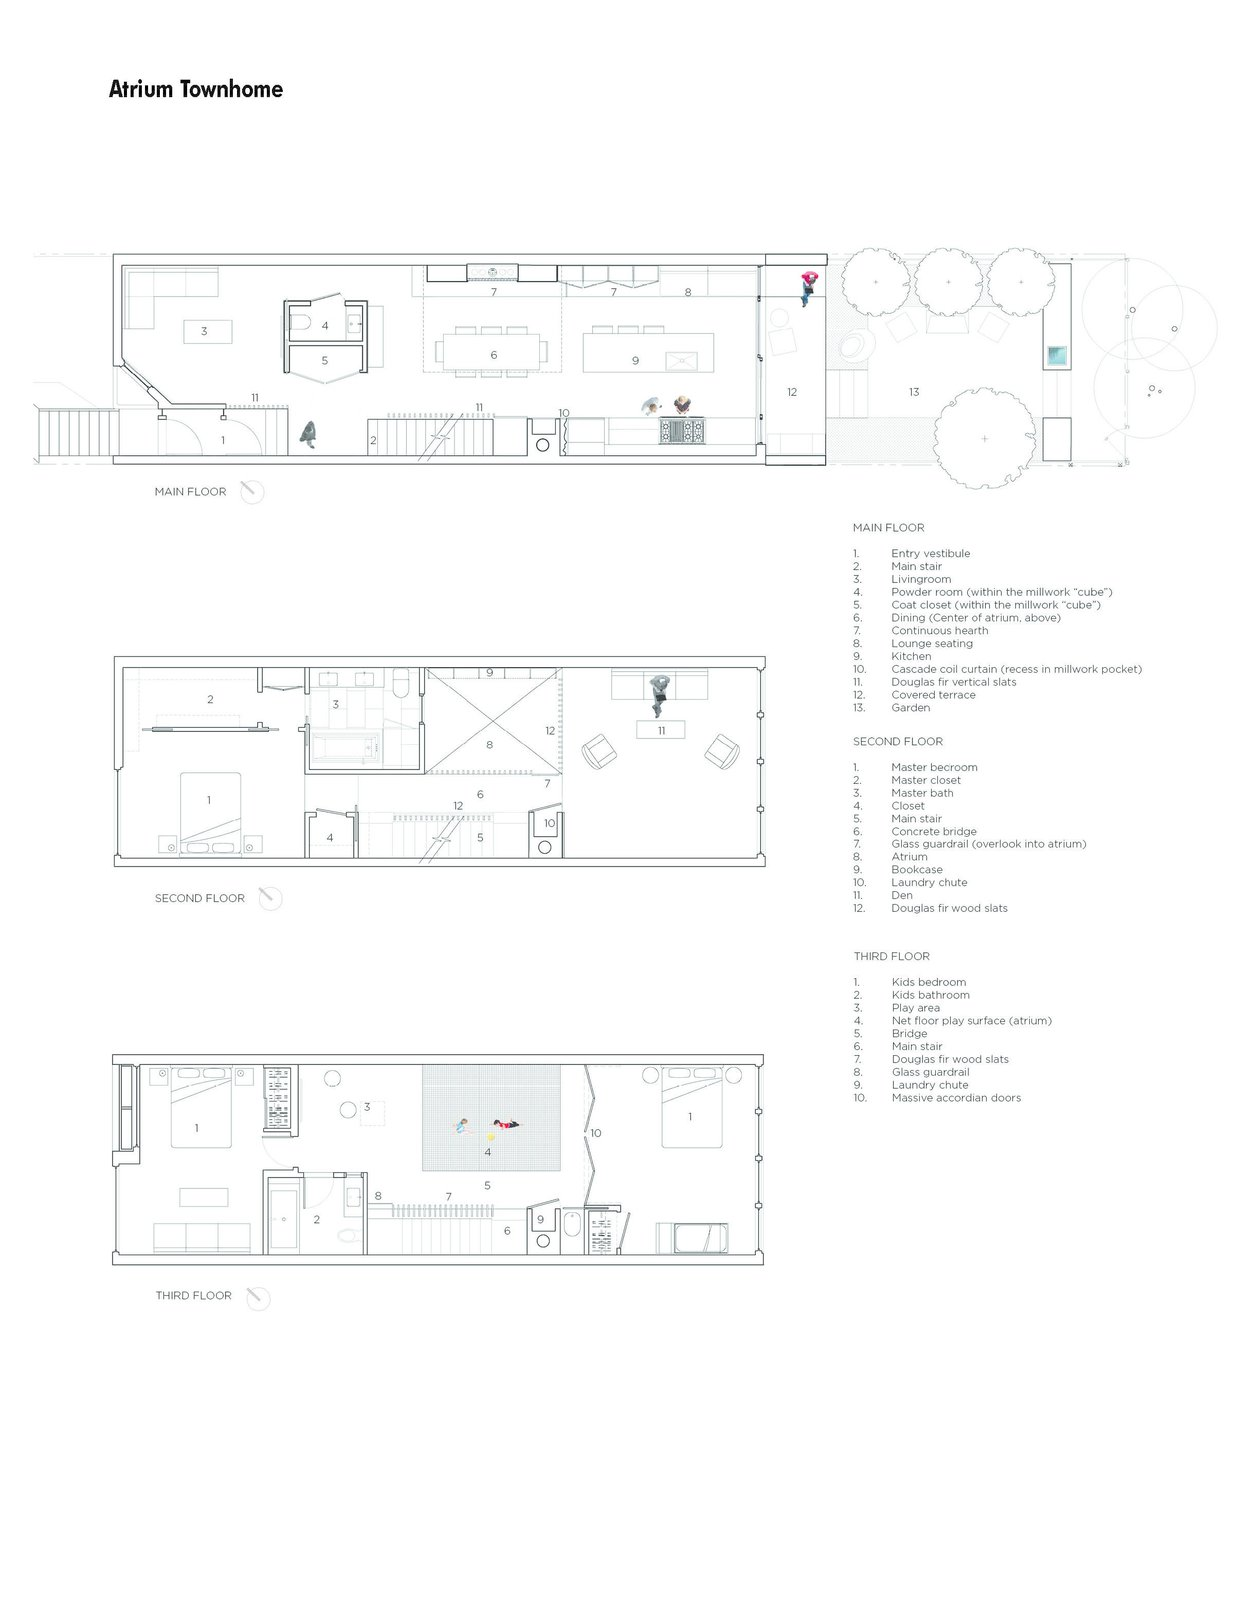 Floor plans  Atrium Townhome by RobitailleCurtis